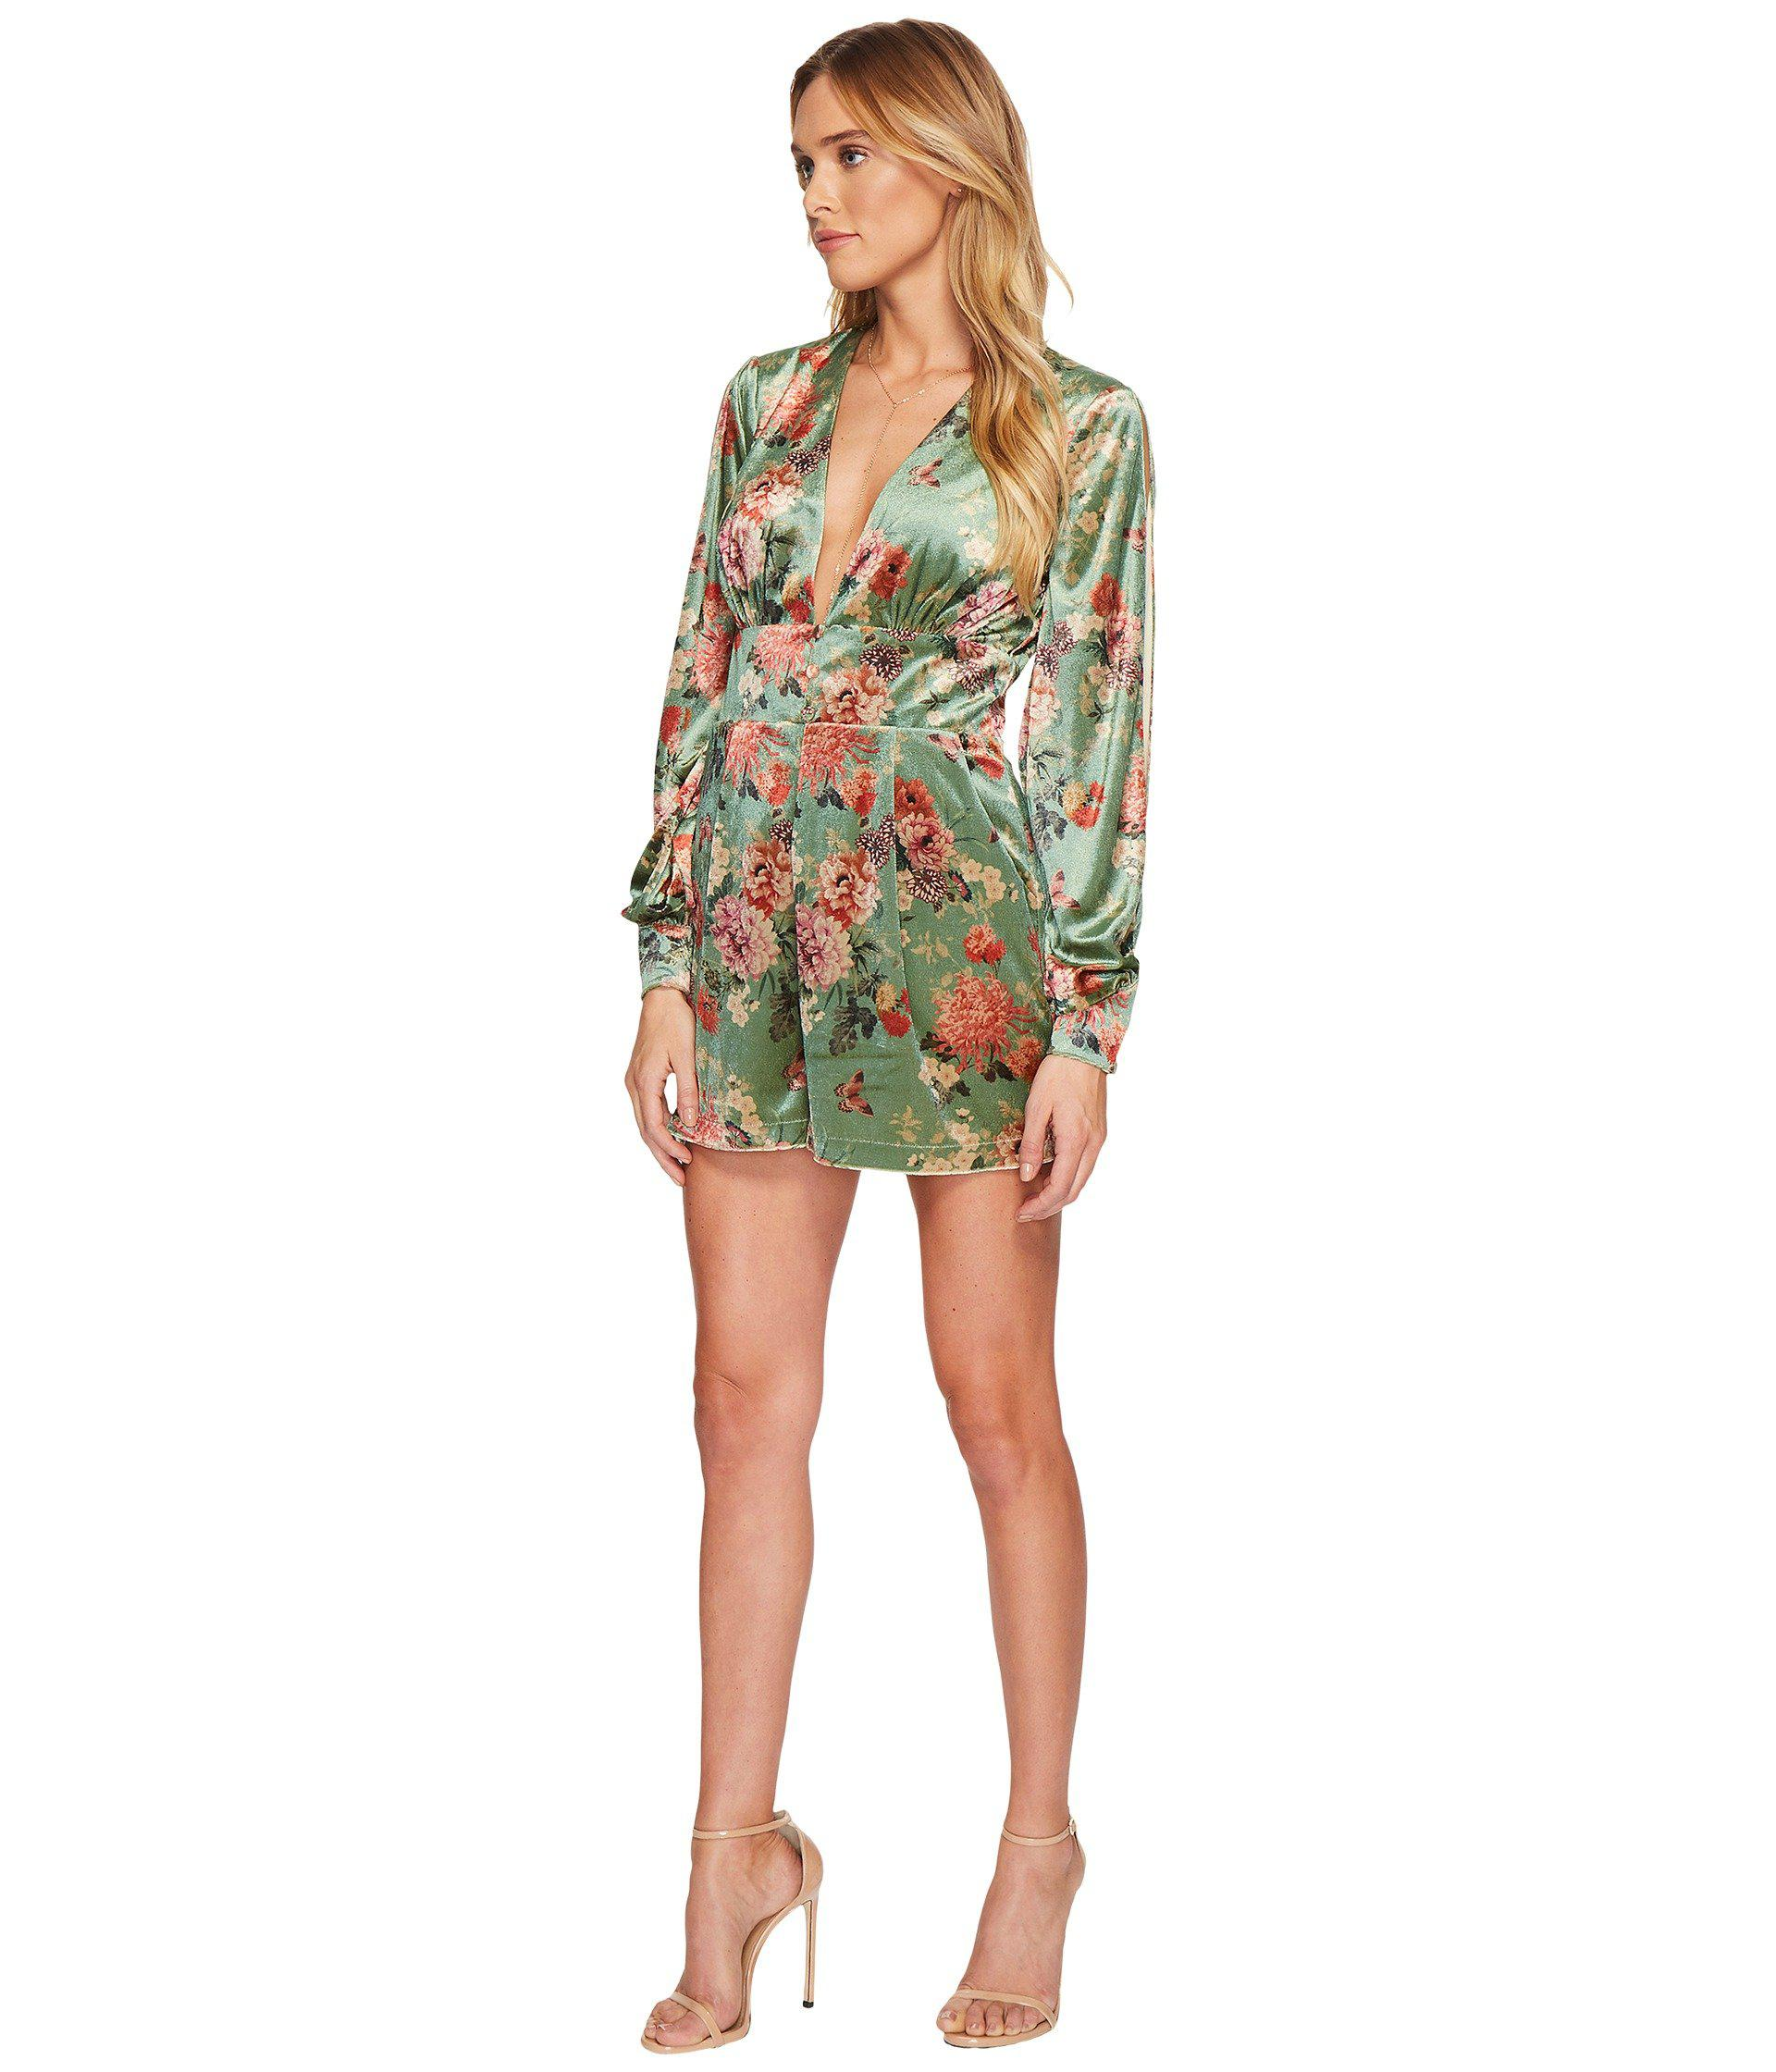 b11923359db2 Lyst - Adelyn Rae Adela Romper in Green - Save 46%